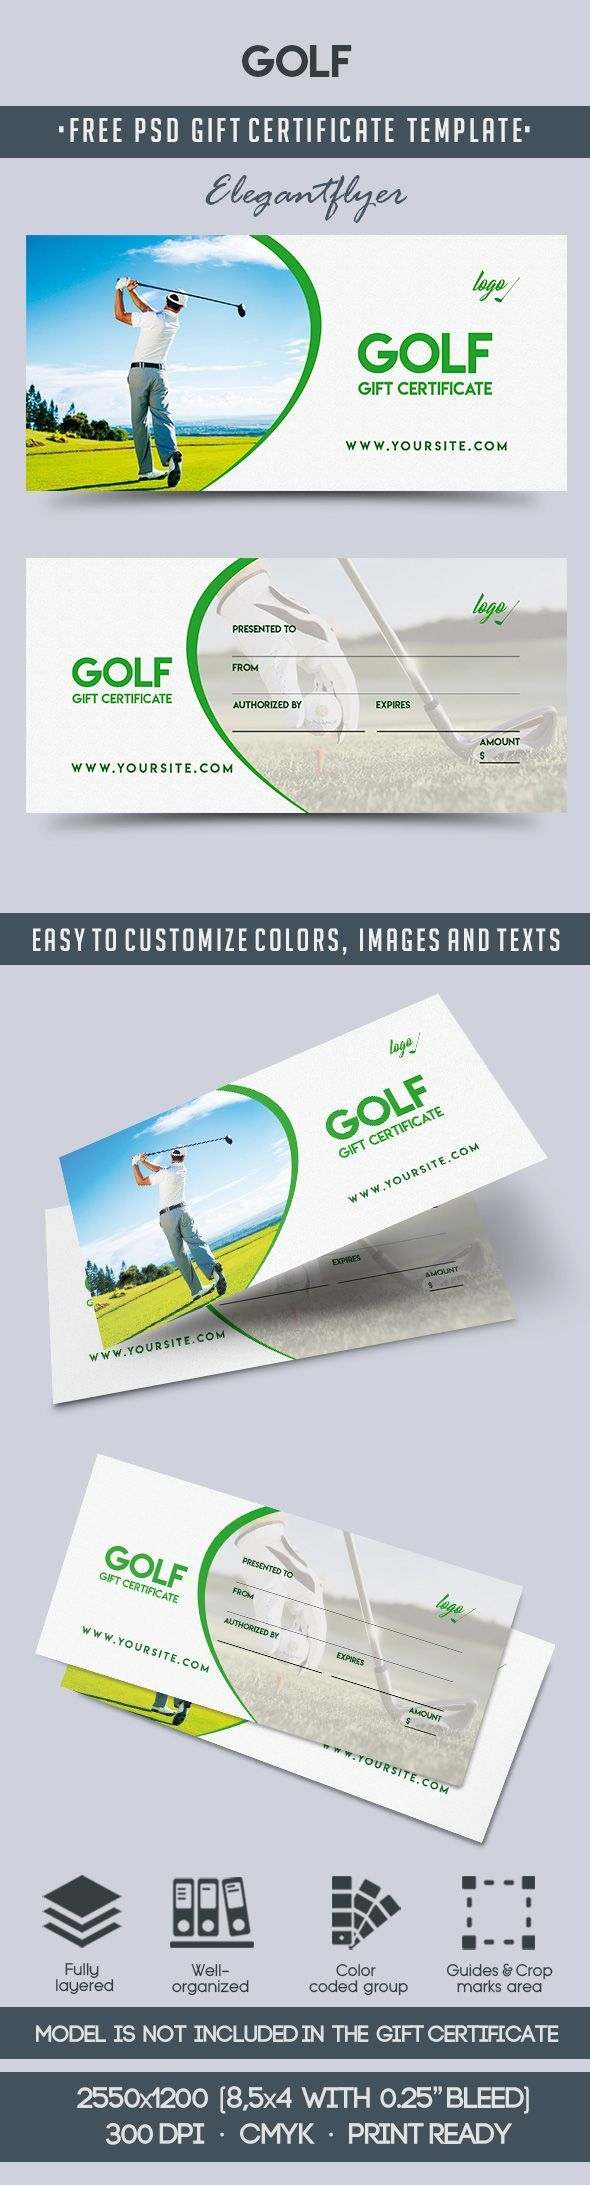 Free gift certificate templates 66 pinterest golf club gift vouchers yelopaper Image collections